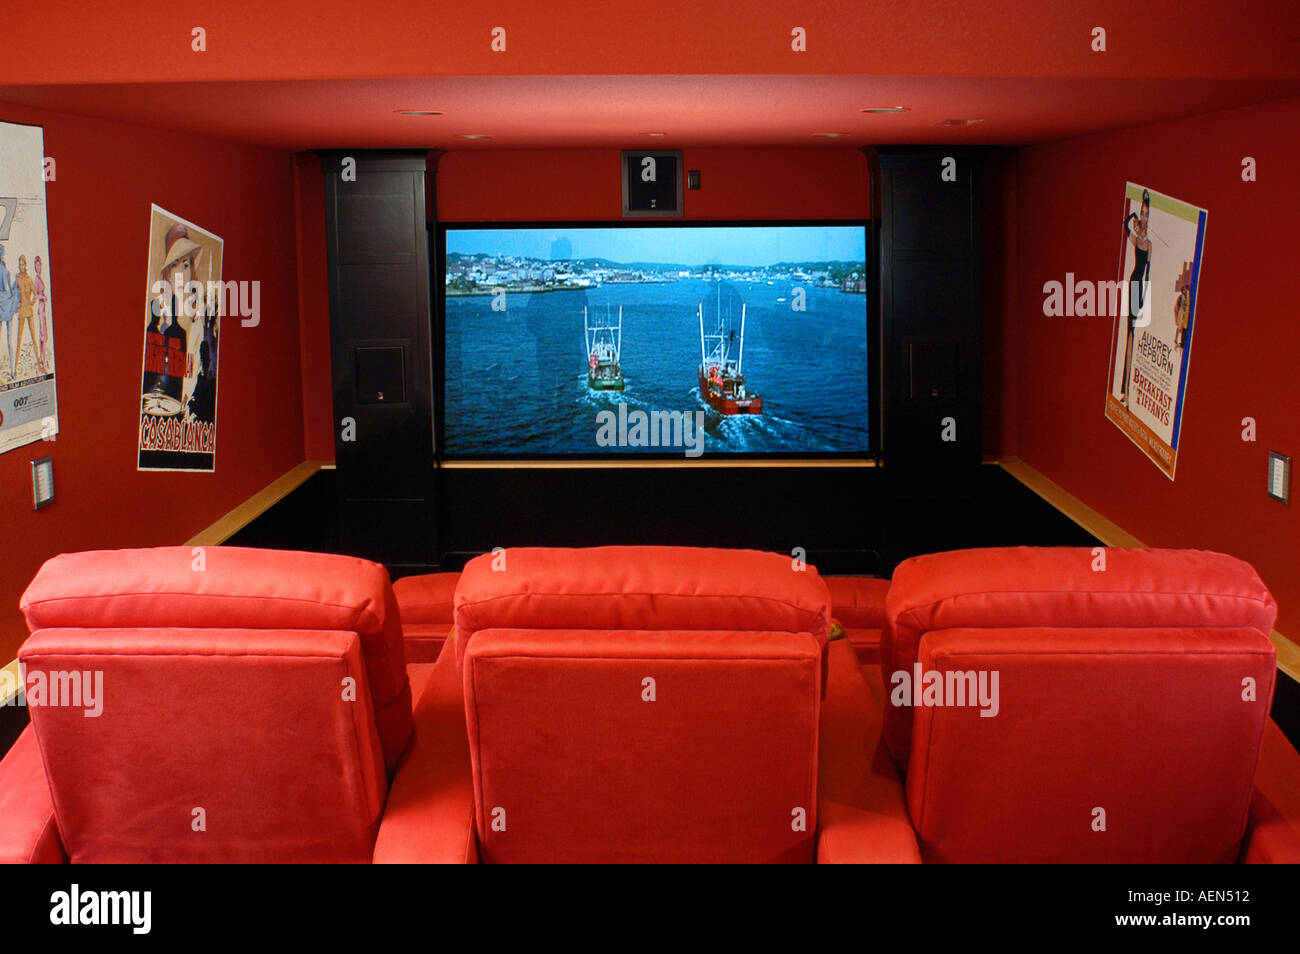 Luxury Home Movie Theater And Screen Red Recliner Chairs